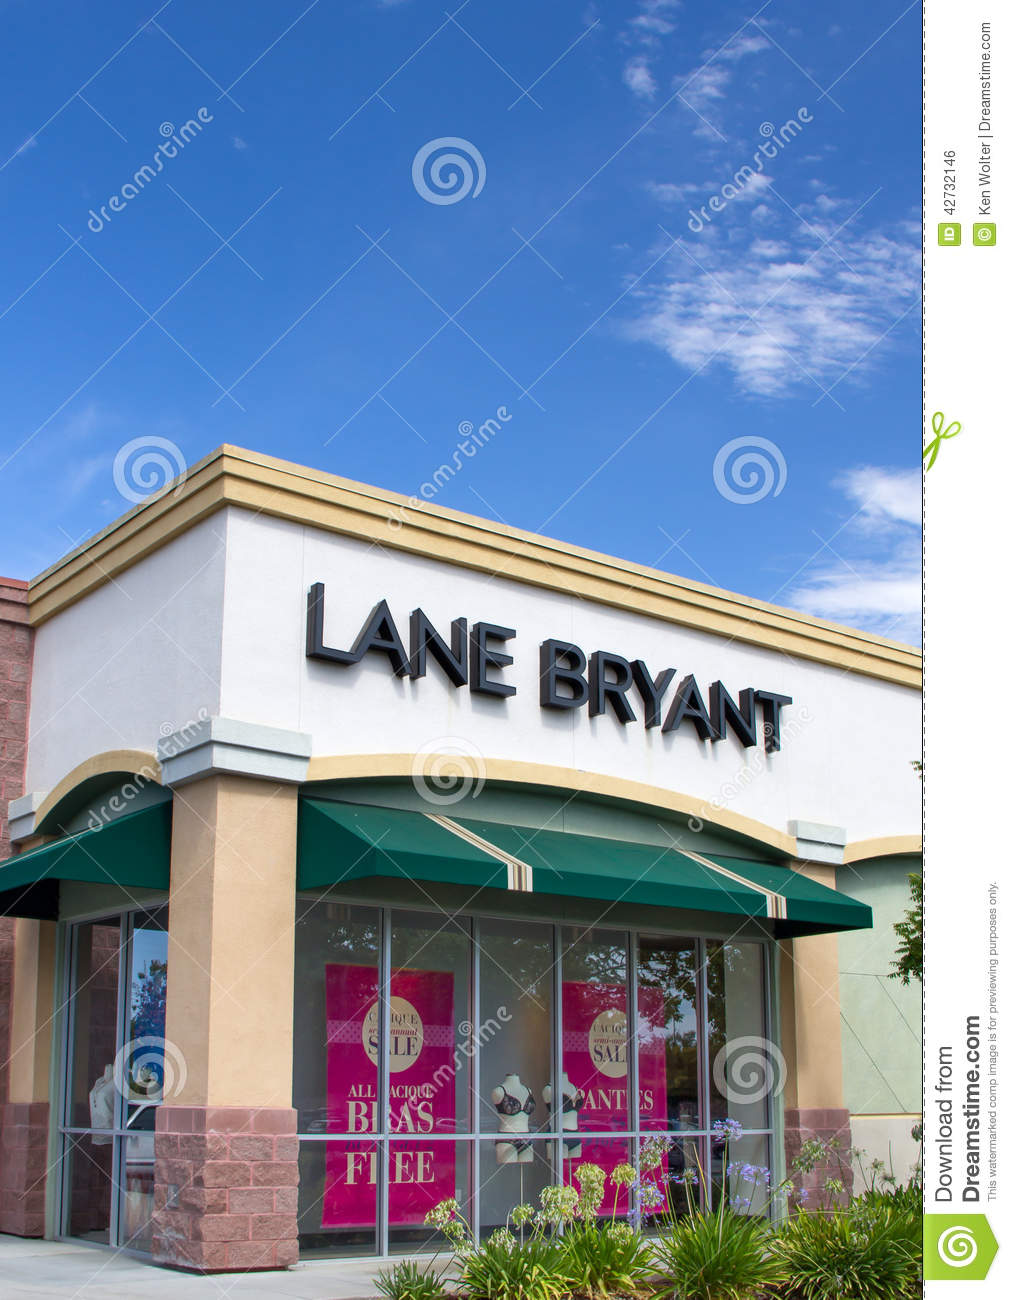 bryants store asian personals For those of asian descent looking for a date, love, or just connecting online, there's sure to be a site here for you while most don't offer as many features as the most widely-known top.